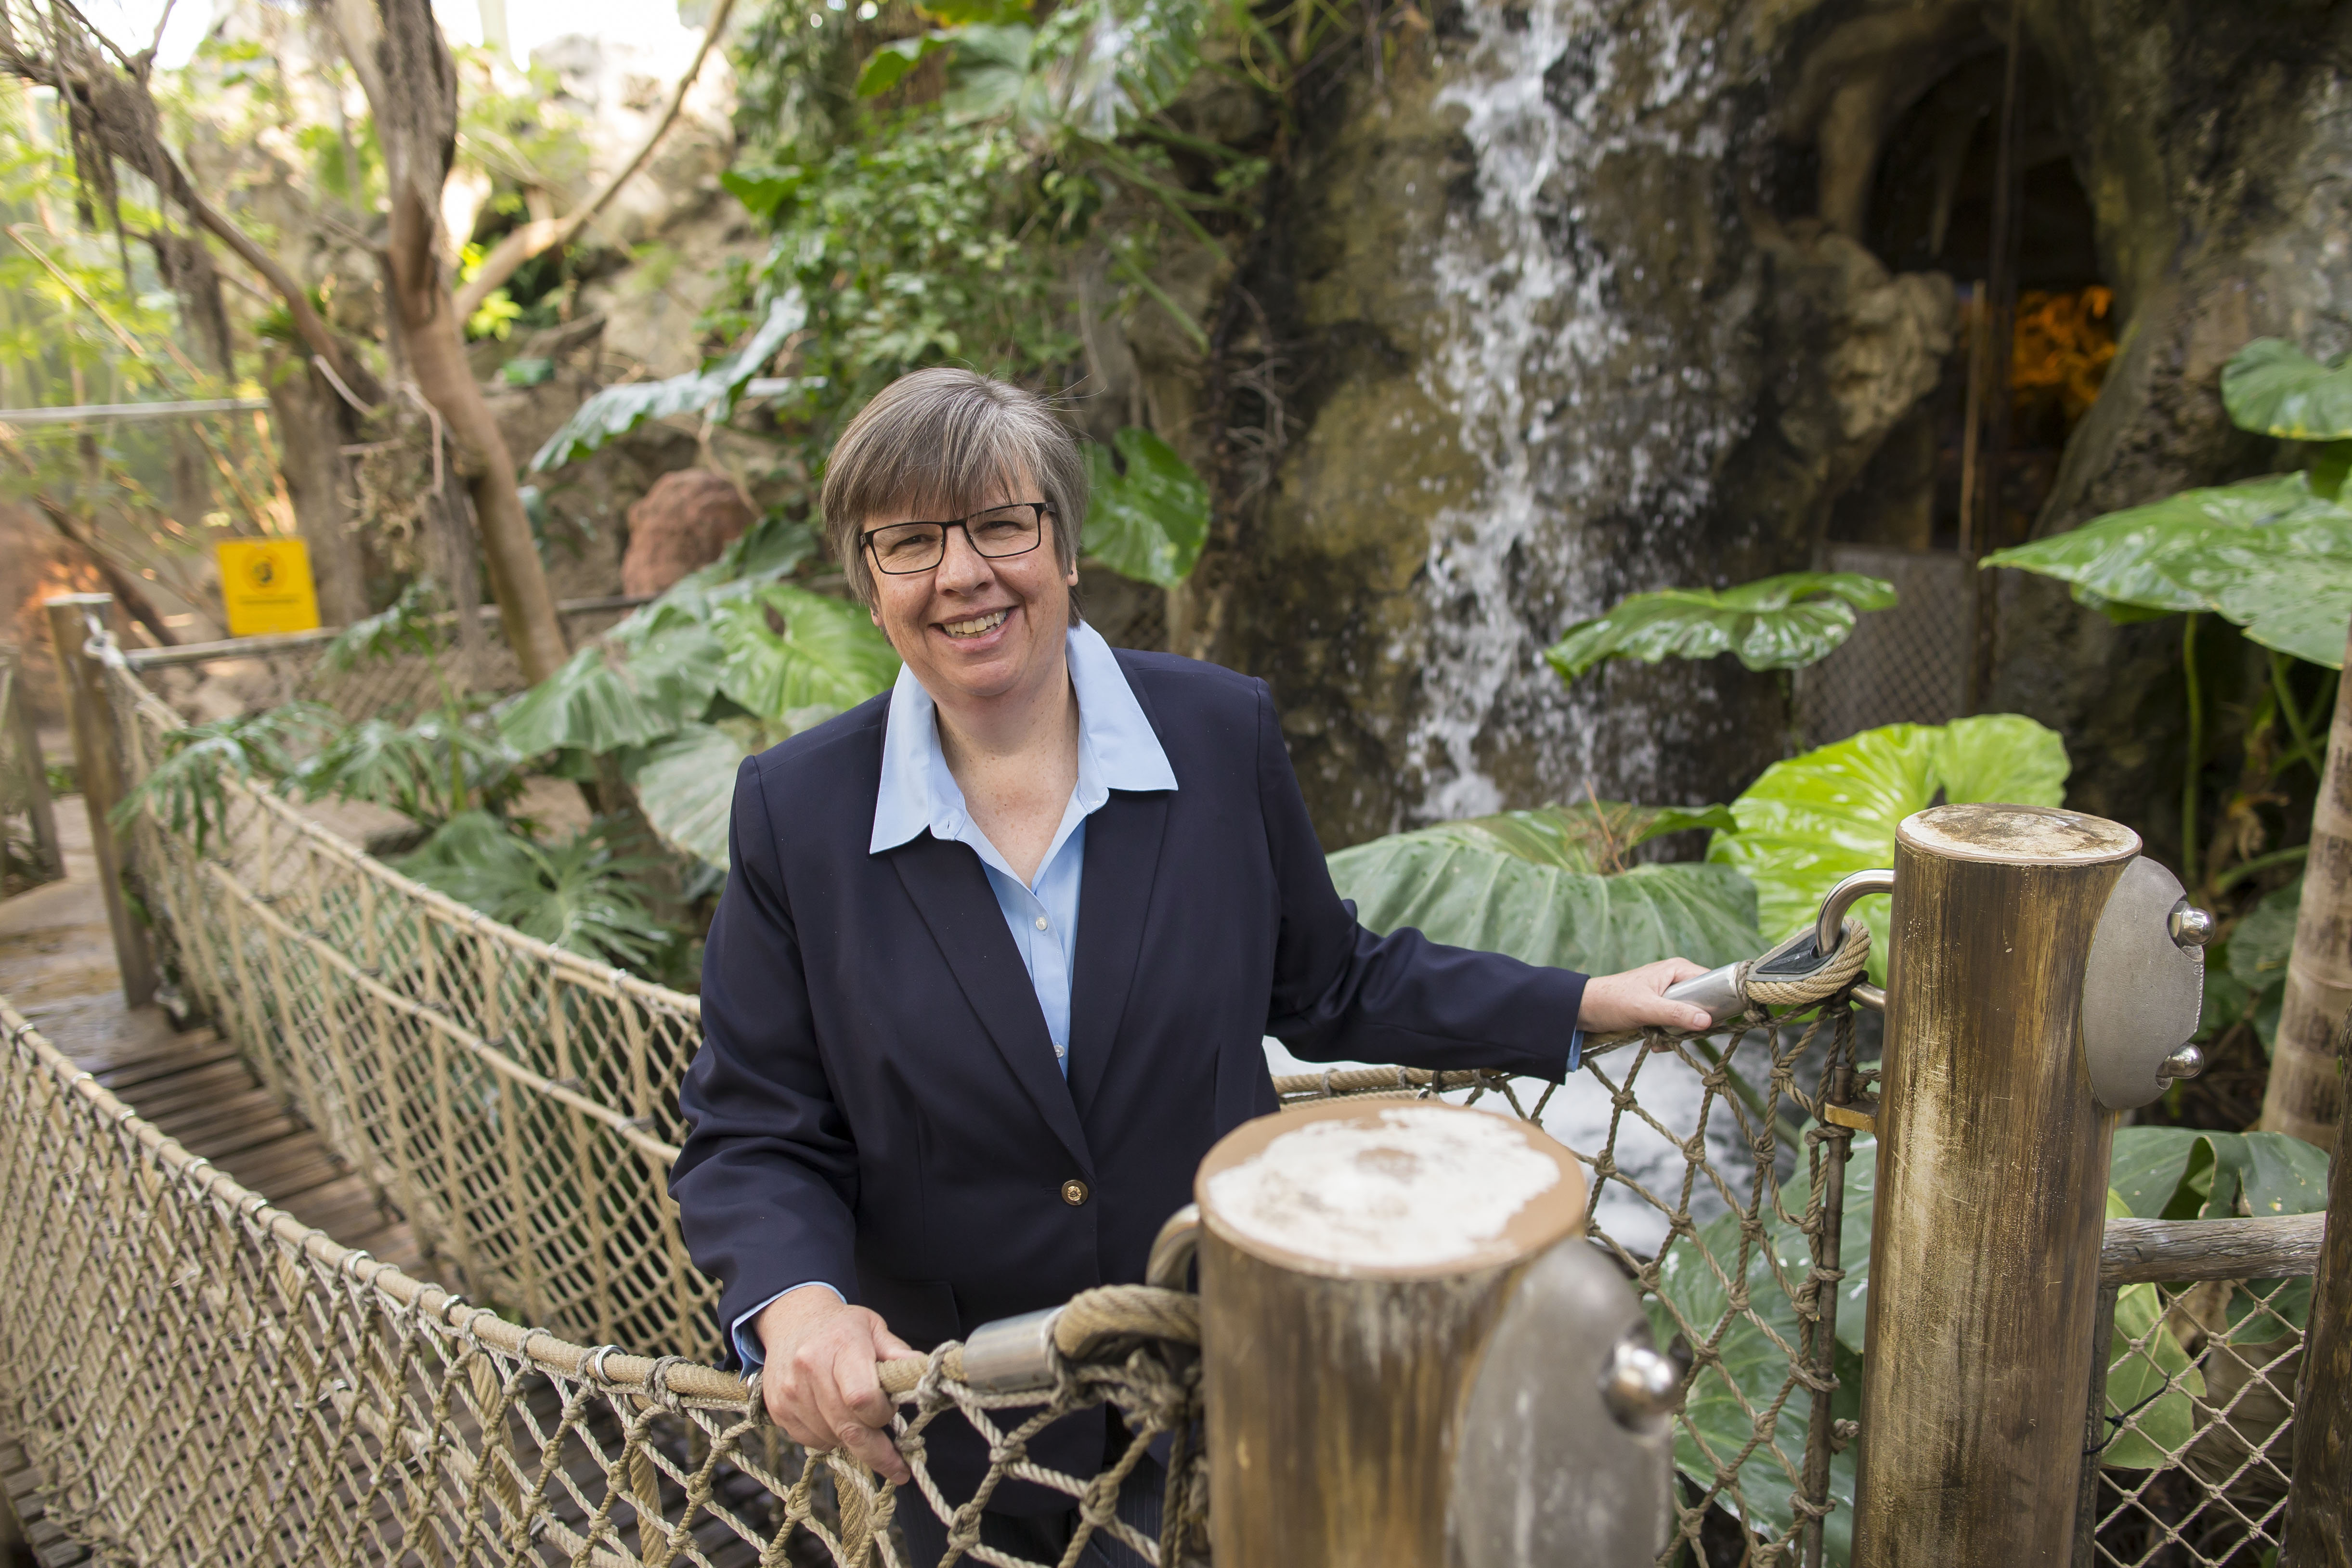 Norah B. Fletchall, currently the COO and senior vice president of the Indianapolis Zoological Society, has been announced as the new president and CEO of The Buffalo Zoo where she will begin May 22.  Photographed in the Rainforest Falls exhibit, Monday, April 24, 2017.  (Derek Gee/Buffalo News)